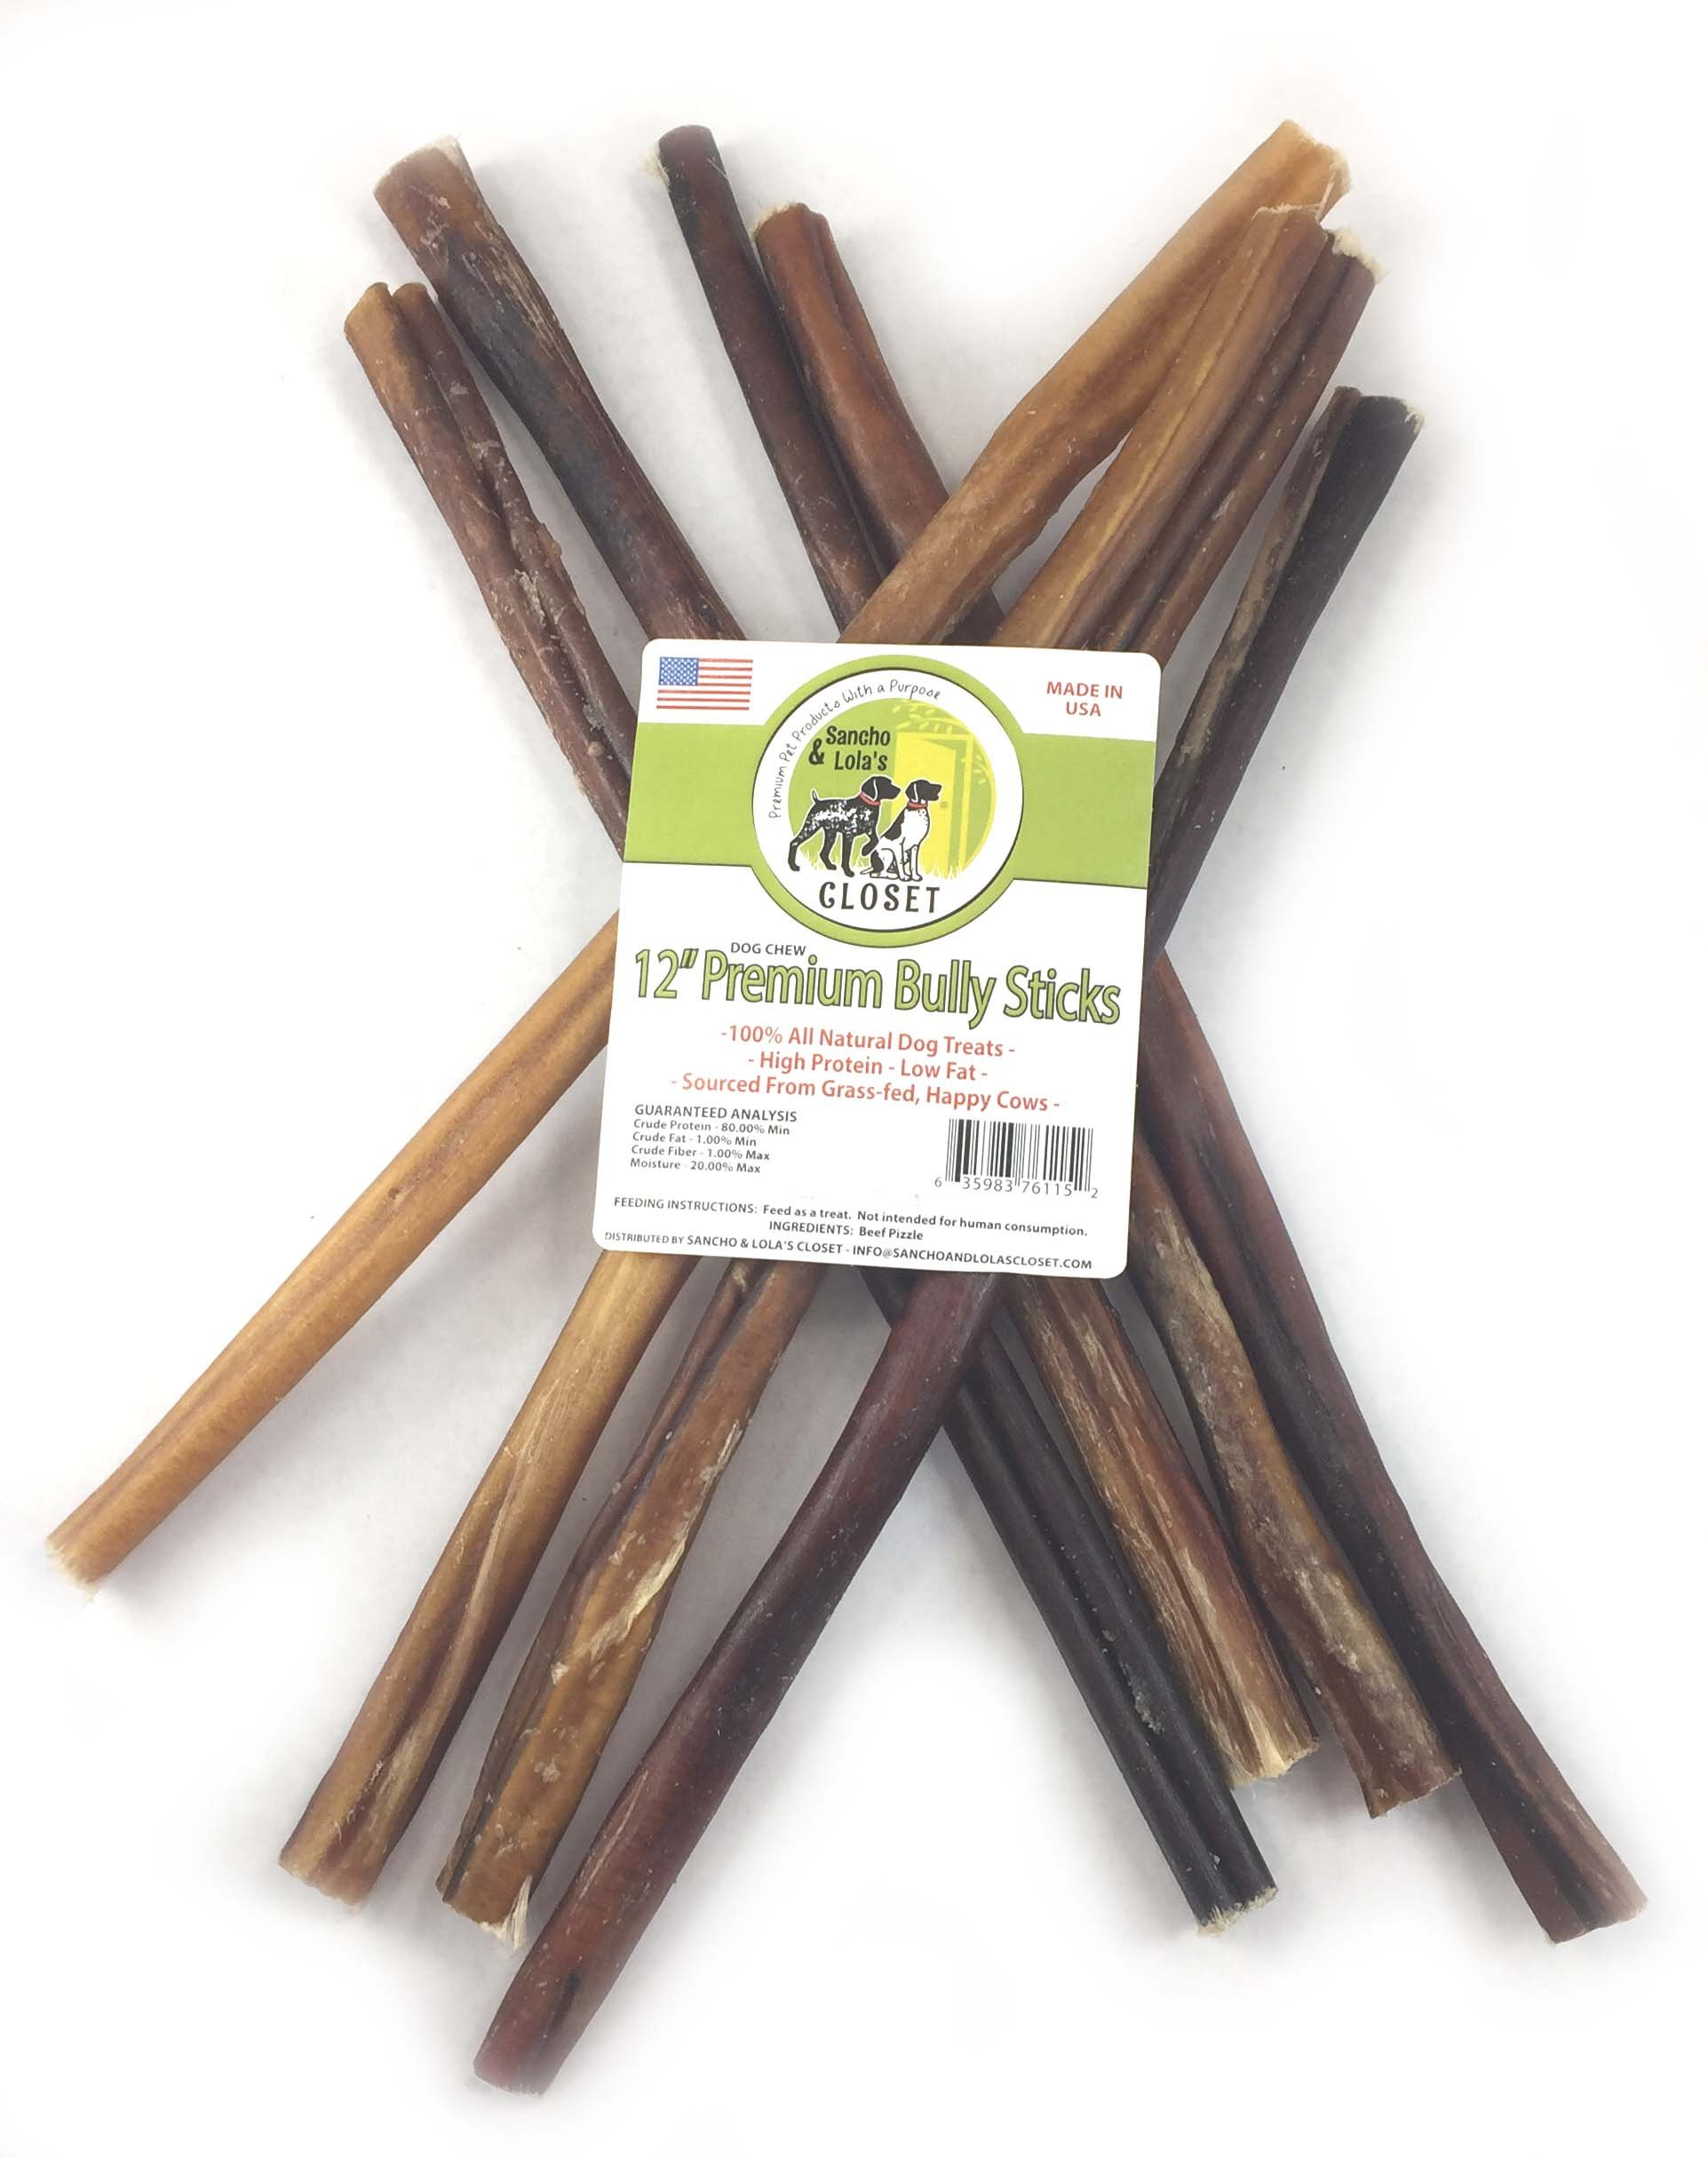 Sancho & Lola's 12-inch 9oz (7-9) Thin Bully Sticks for Dogs Made in USA Grain-Free High Protein Beef Dog Chews